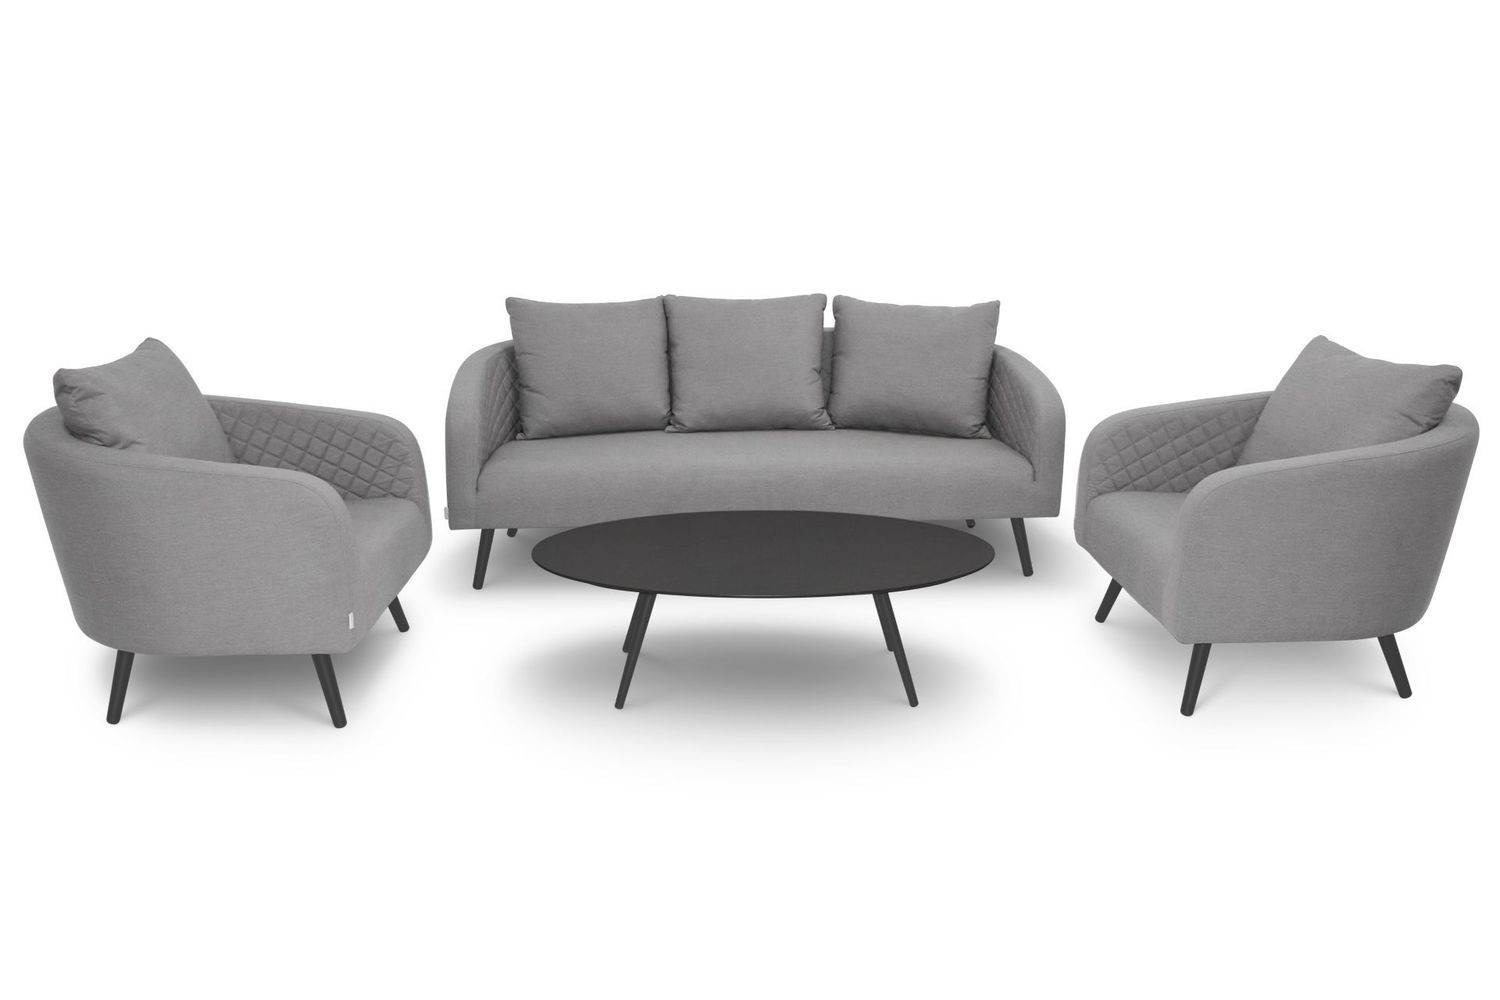 Awesome Ambition 3 Seater Sofa Set Free Protective Winter Covers When Ordering Before End Of April Lamtechconsult Wood Chair Design Ideas Lamtechconsultcom